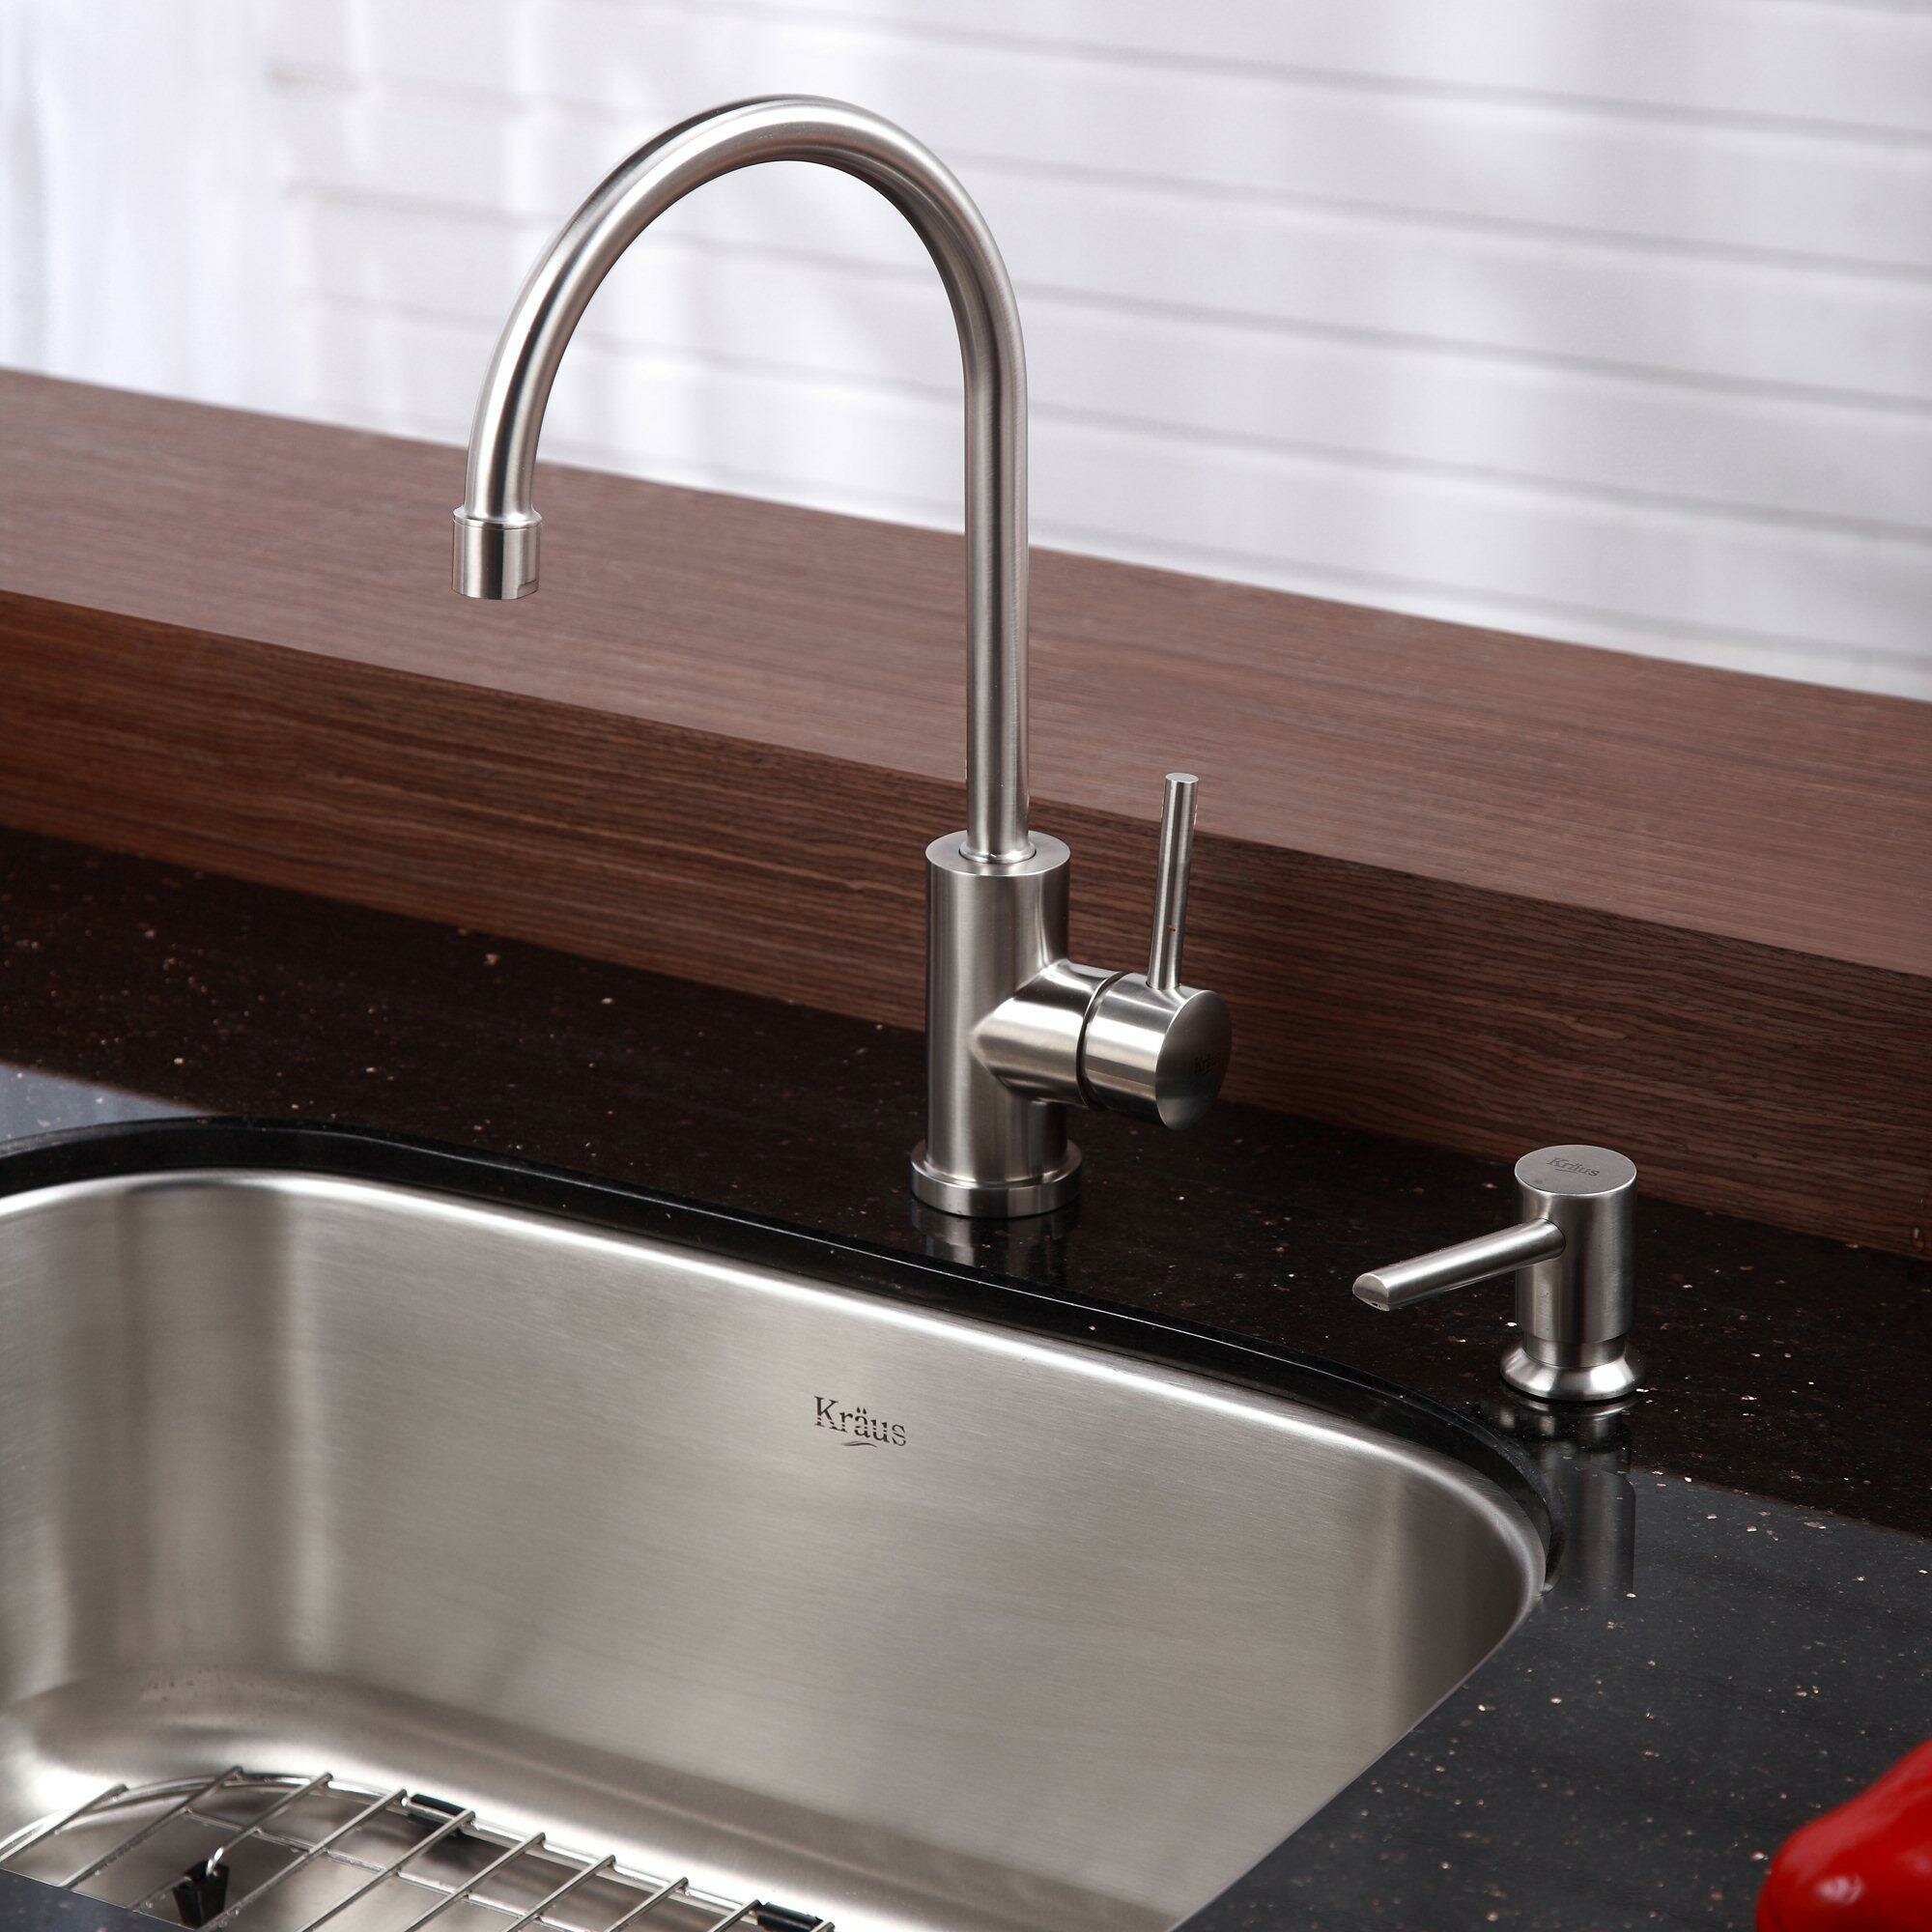 ... Single Bowl Kitchen Sink with 14.3